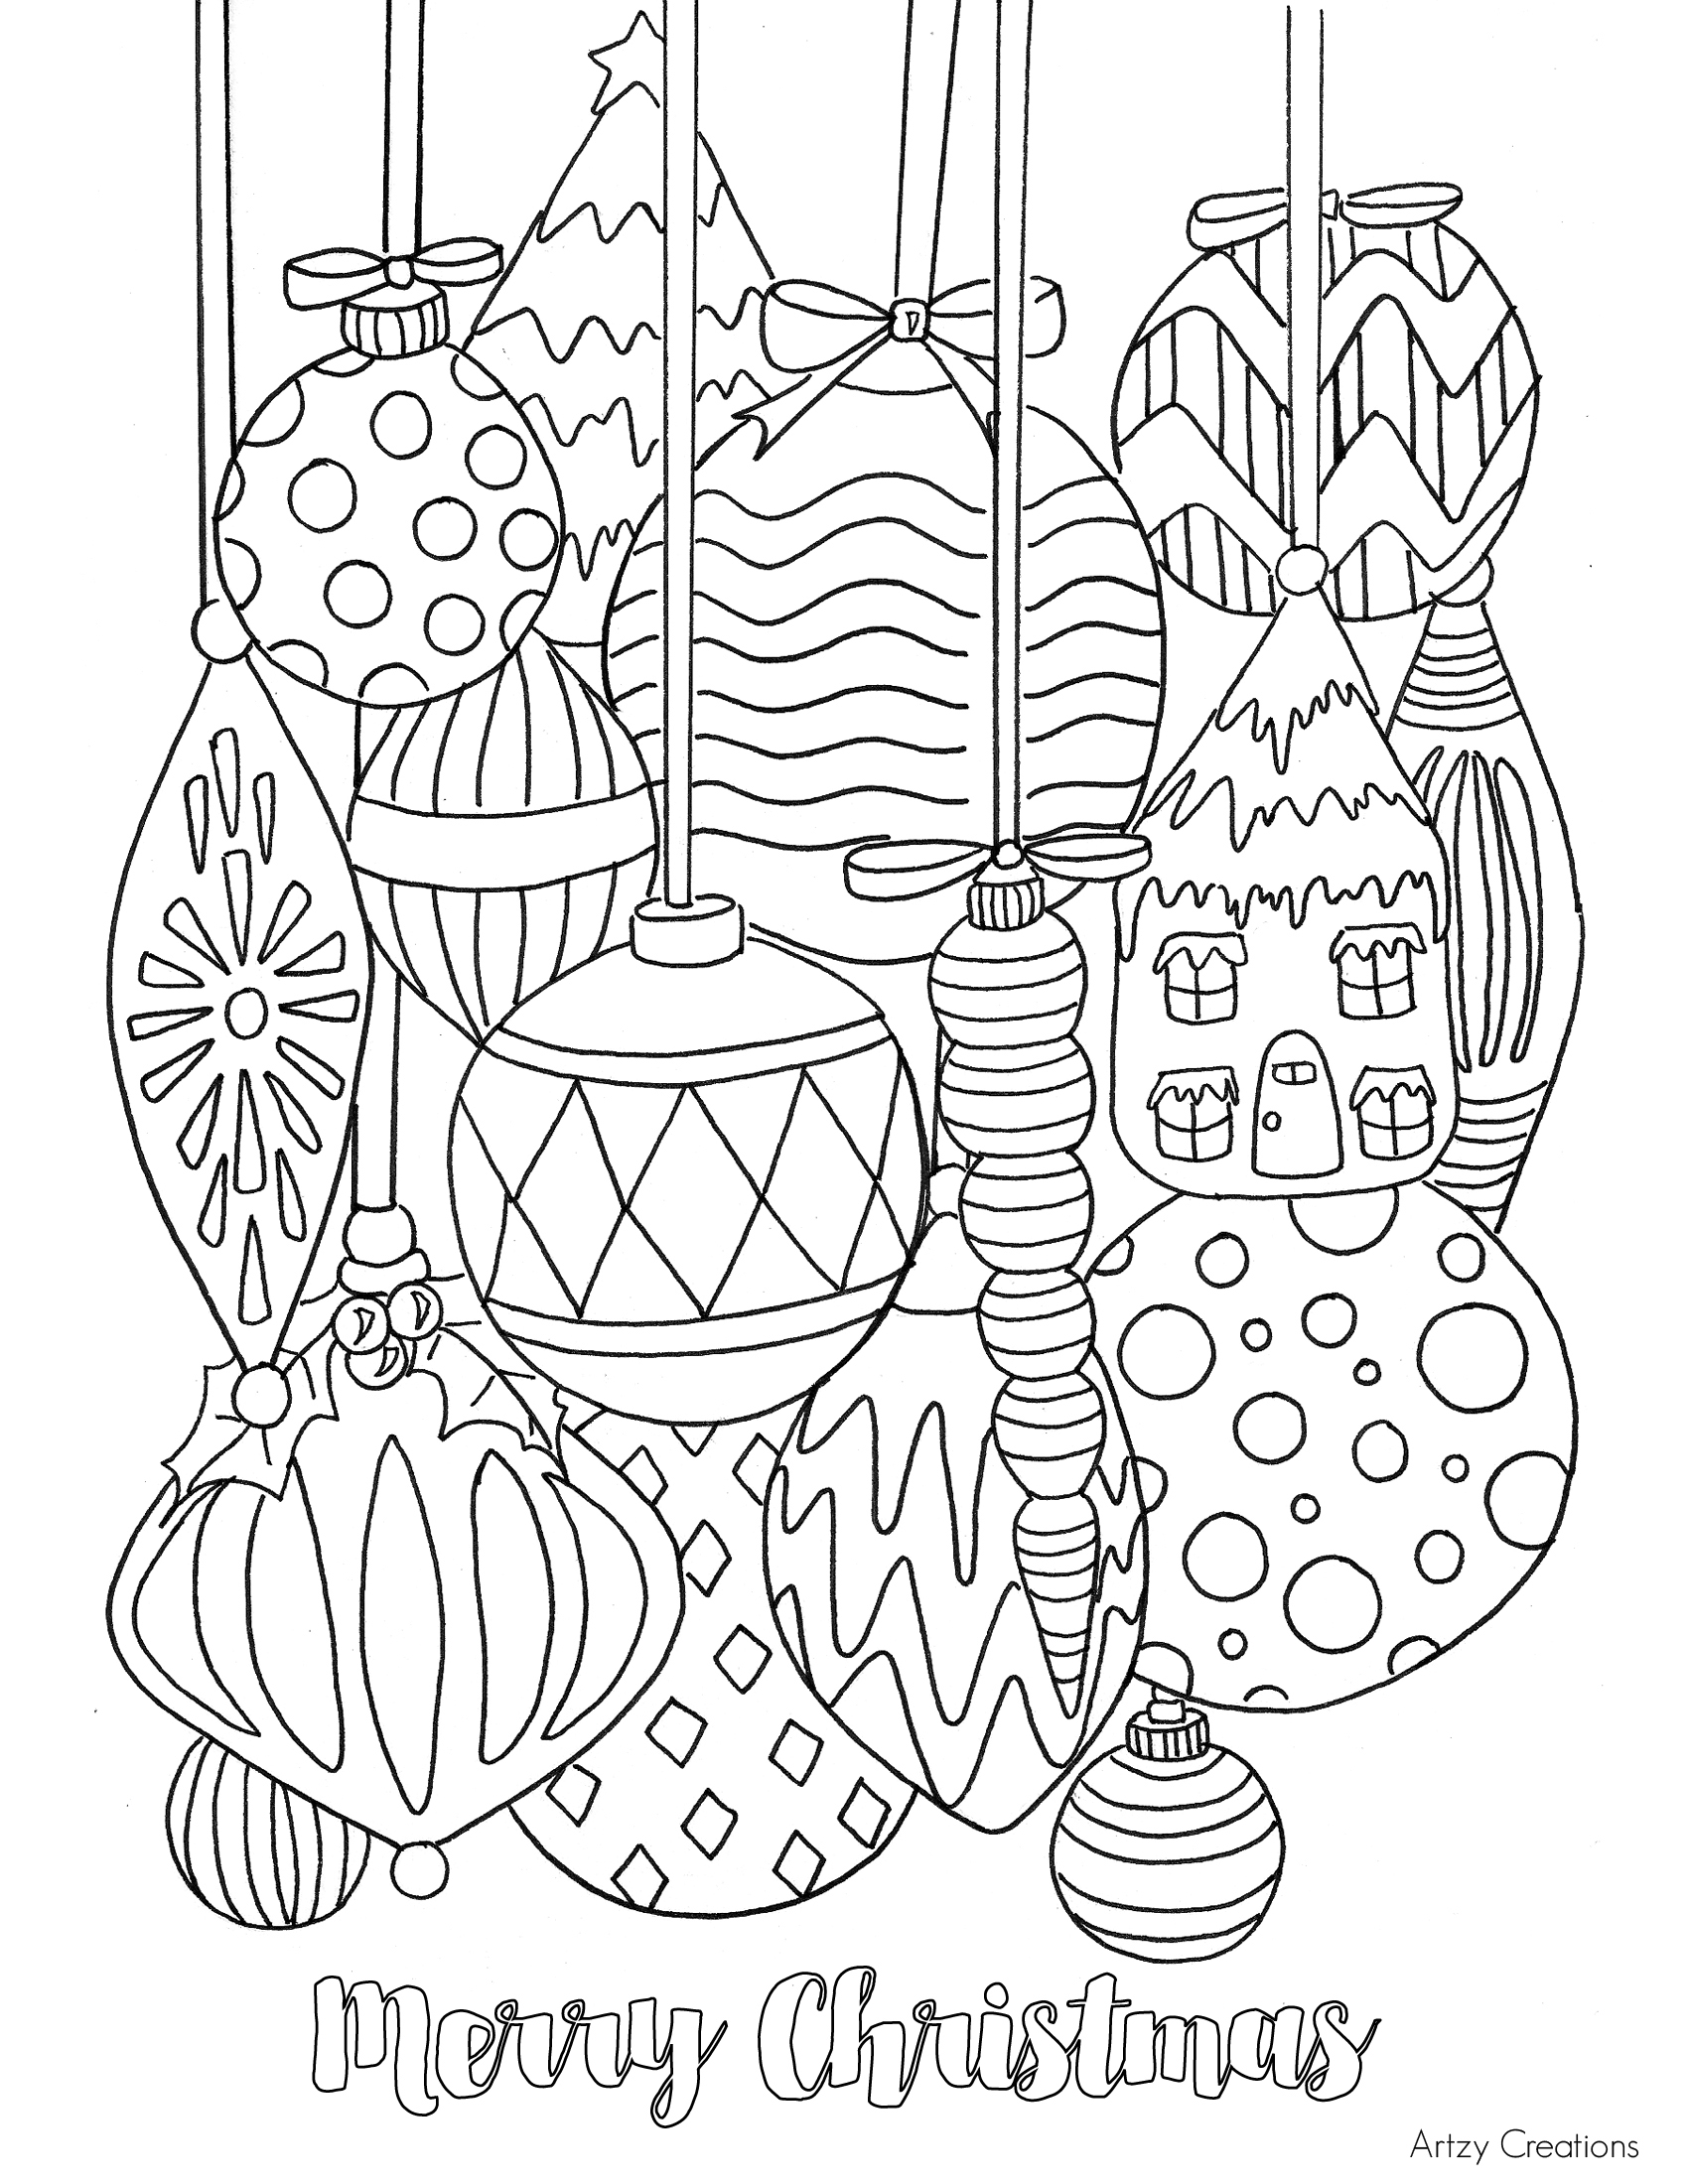 holiday coloring pages free free christmas ornament coloring page tgif this coloring holiday pages free